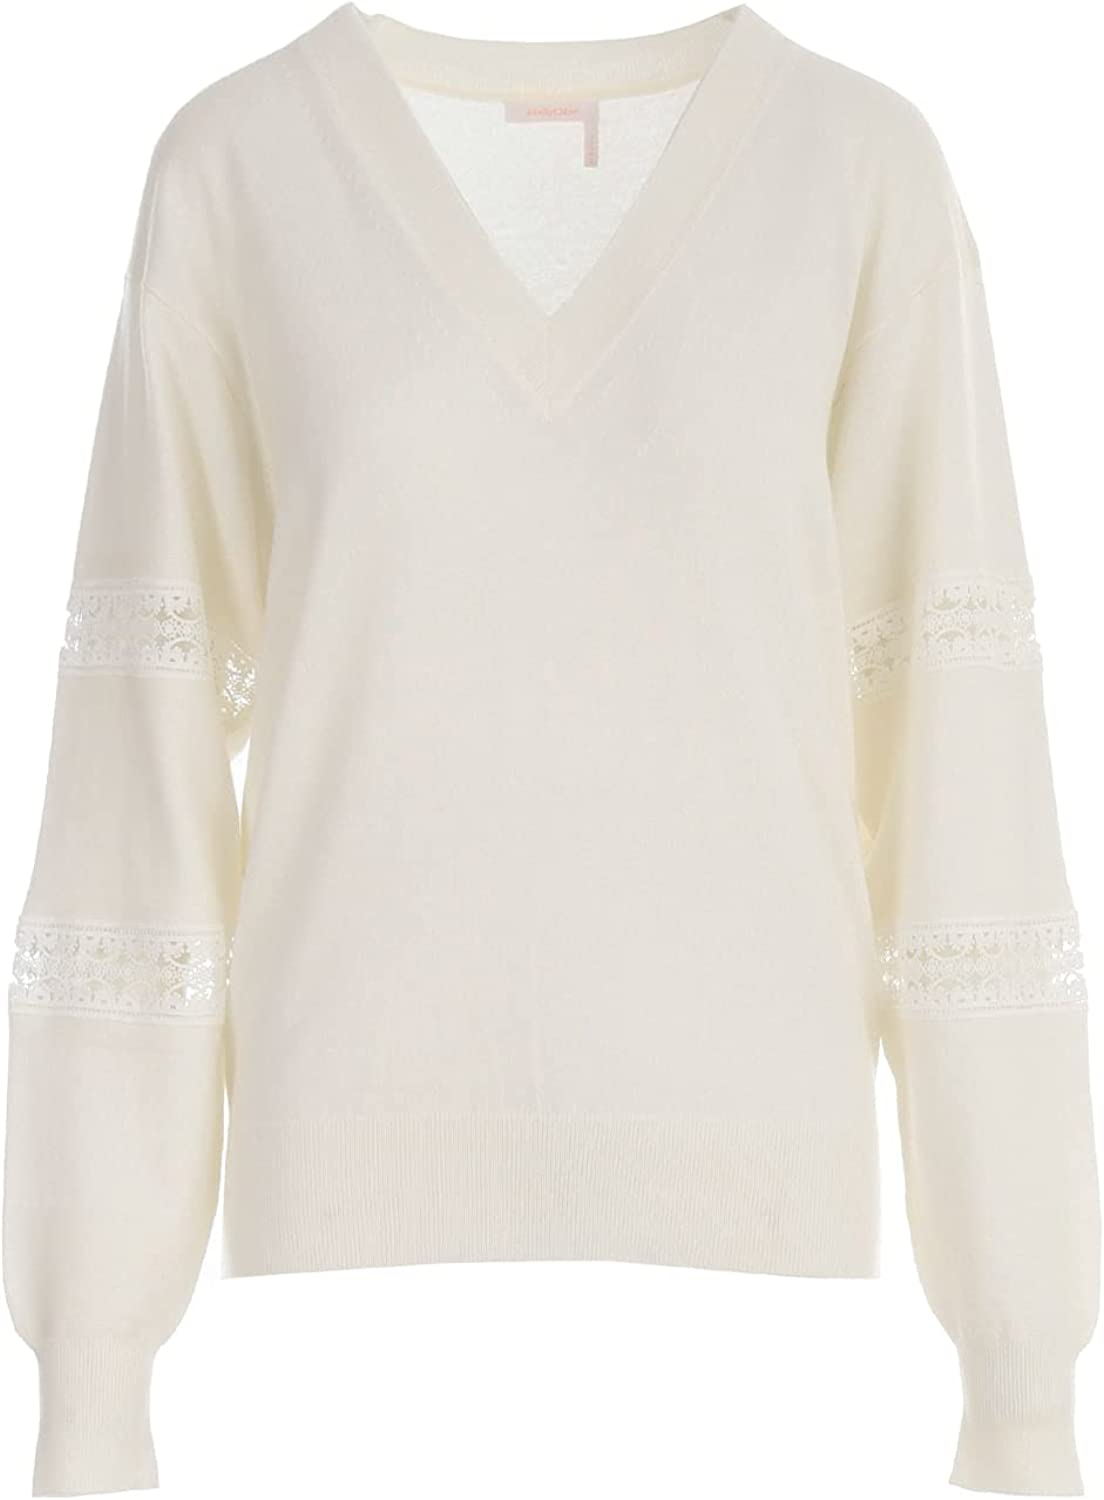 See by Chloé womens Pullover